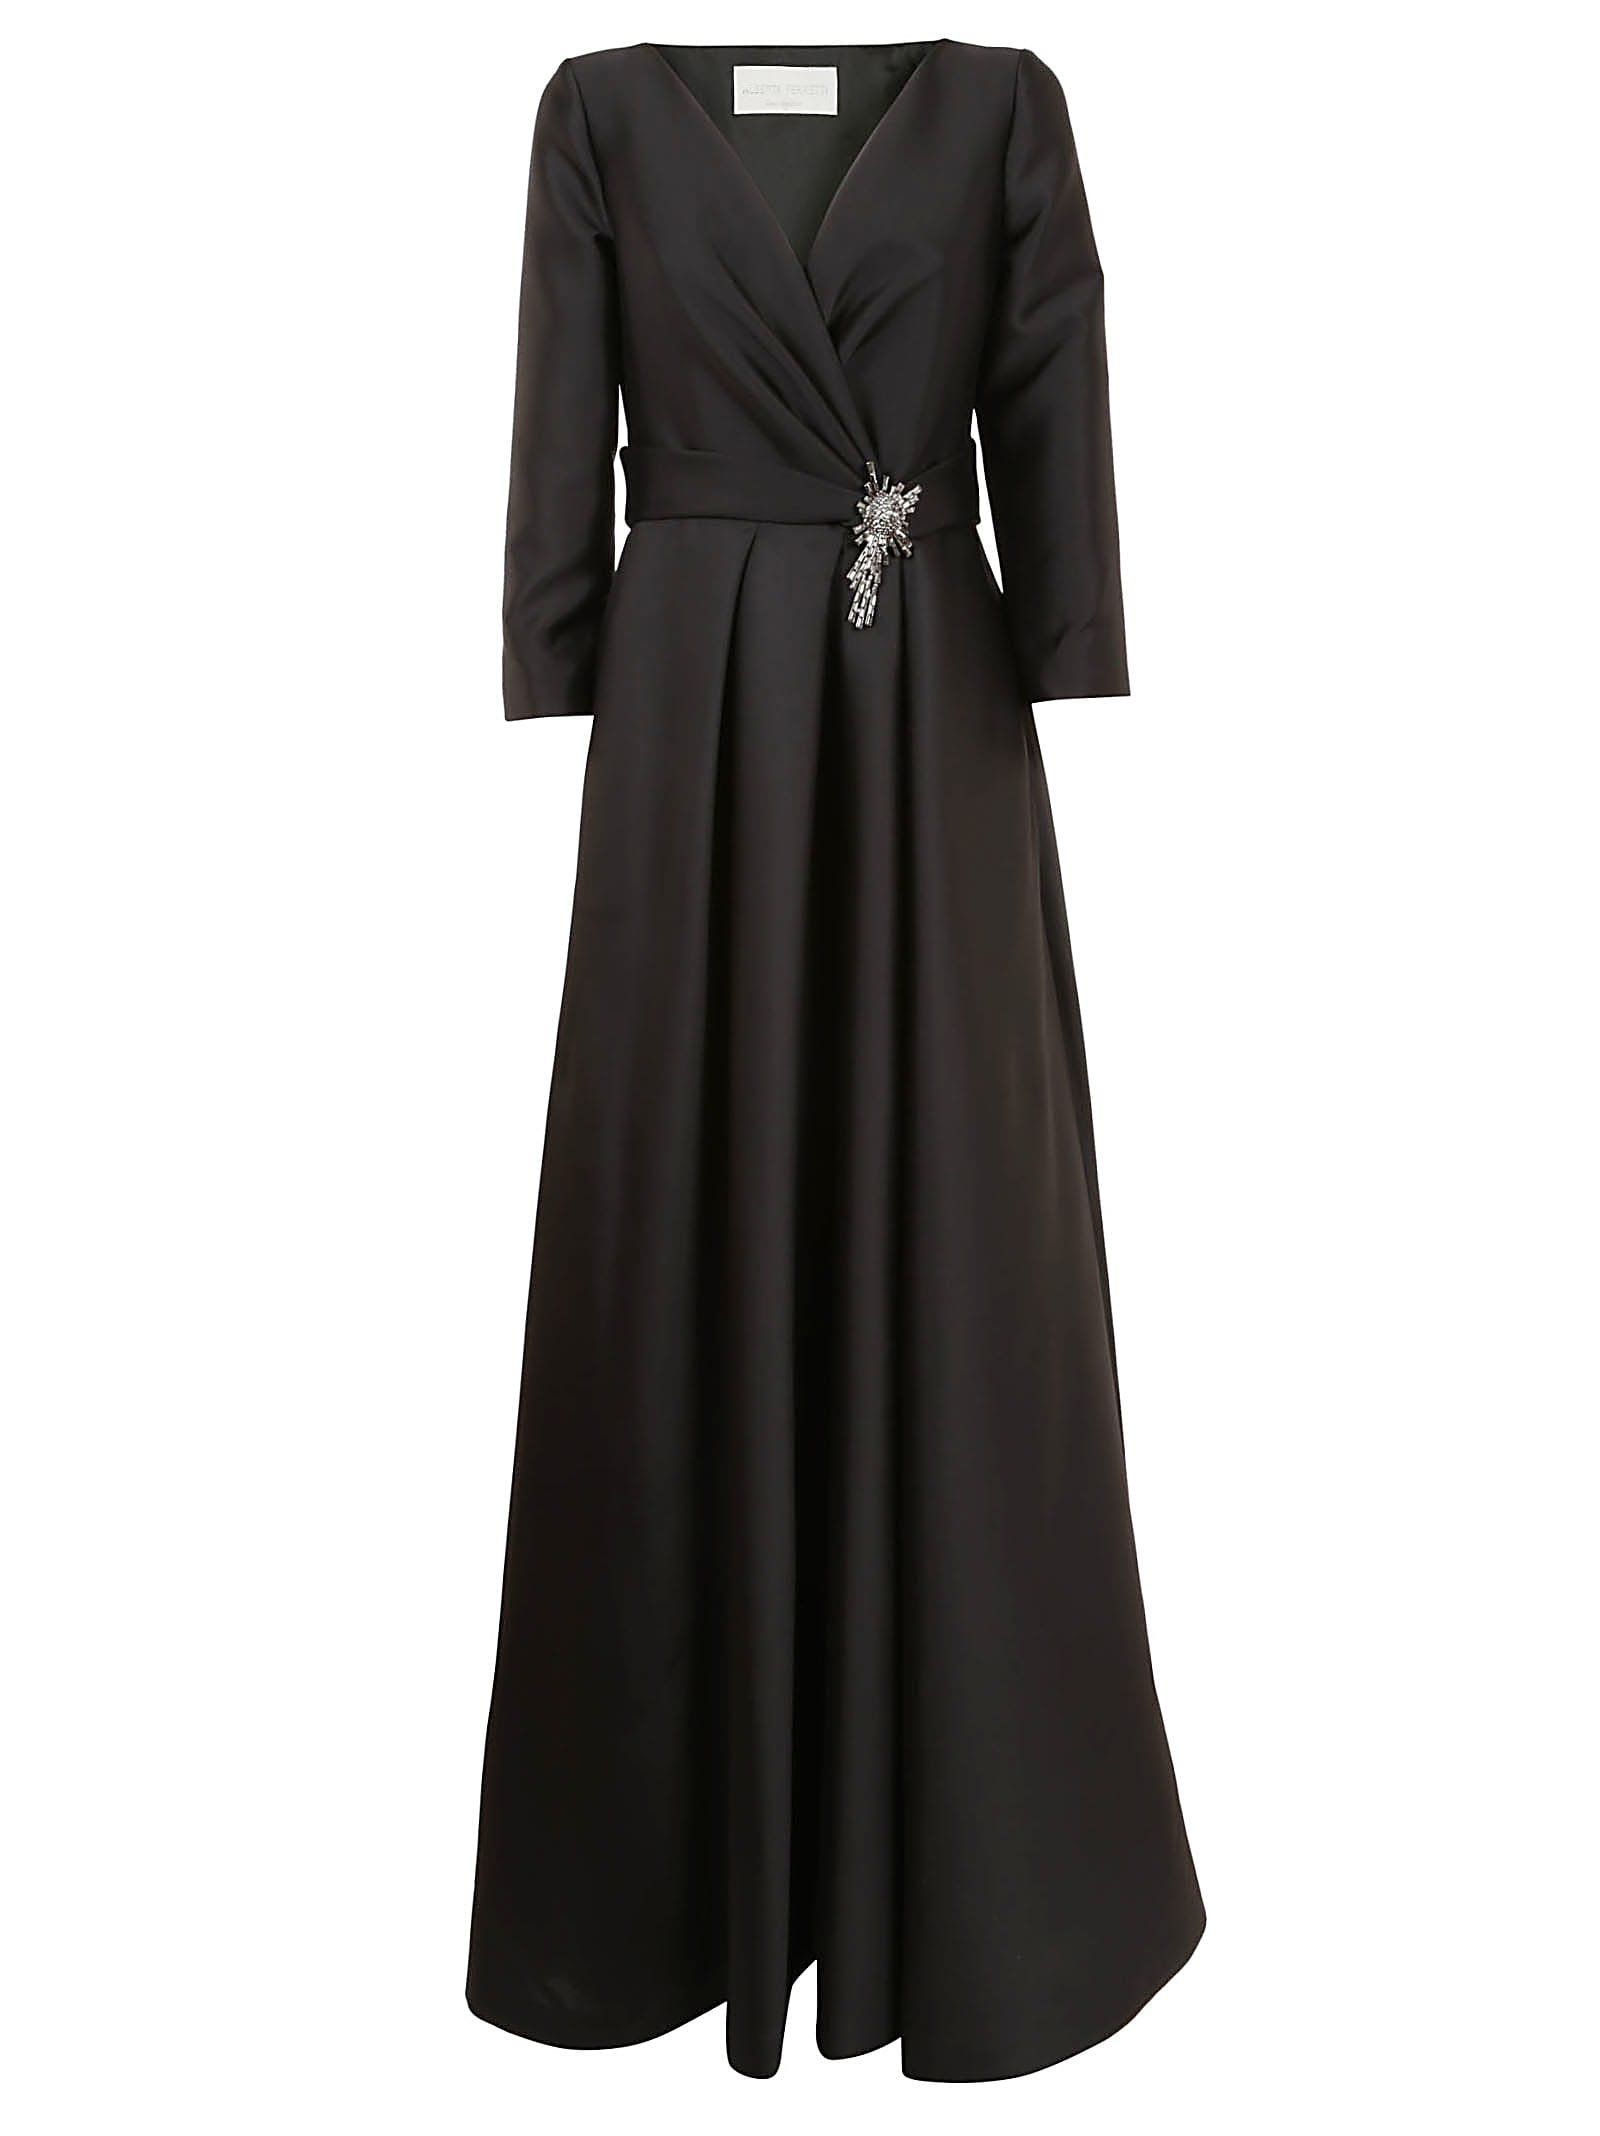 Alberta Ferretti Belted Wrapped Dress